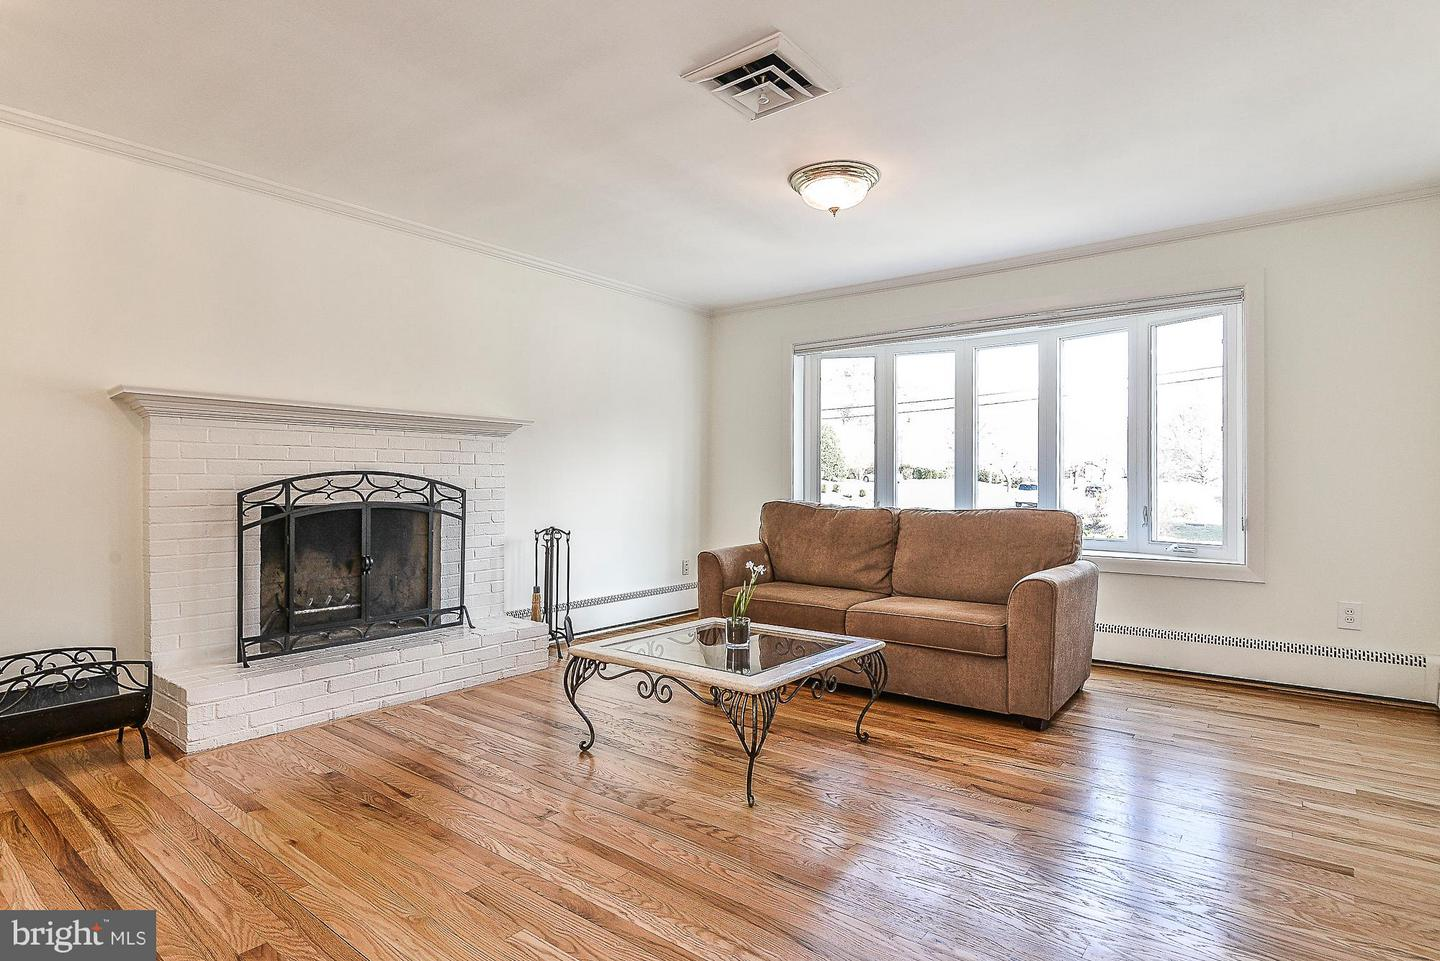 Additional photo for property listing at 1616 N Howard St 1616 N Howard St Alexandria, Virginia 22304 United States